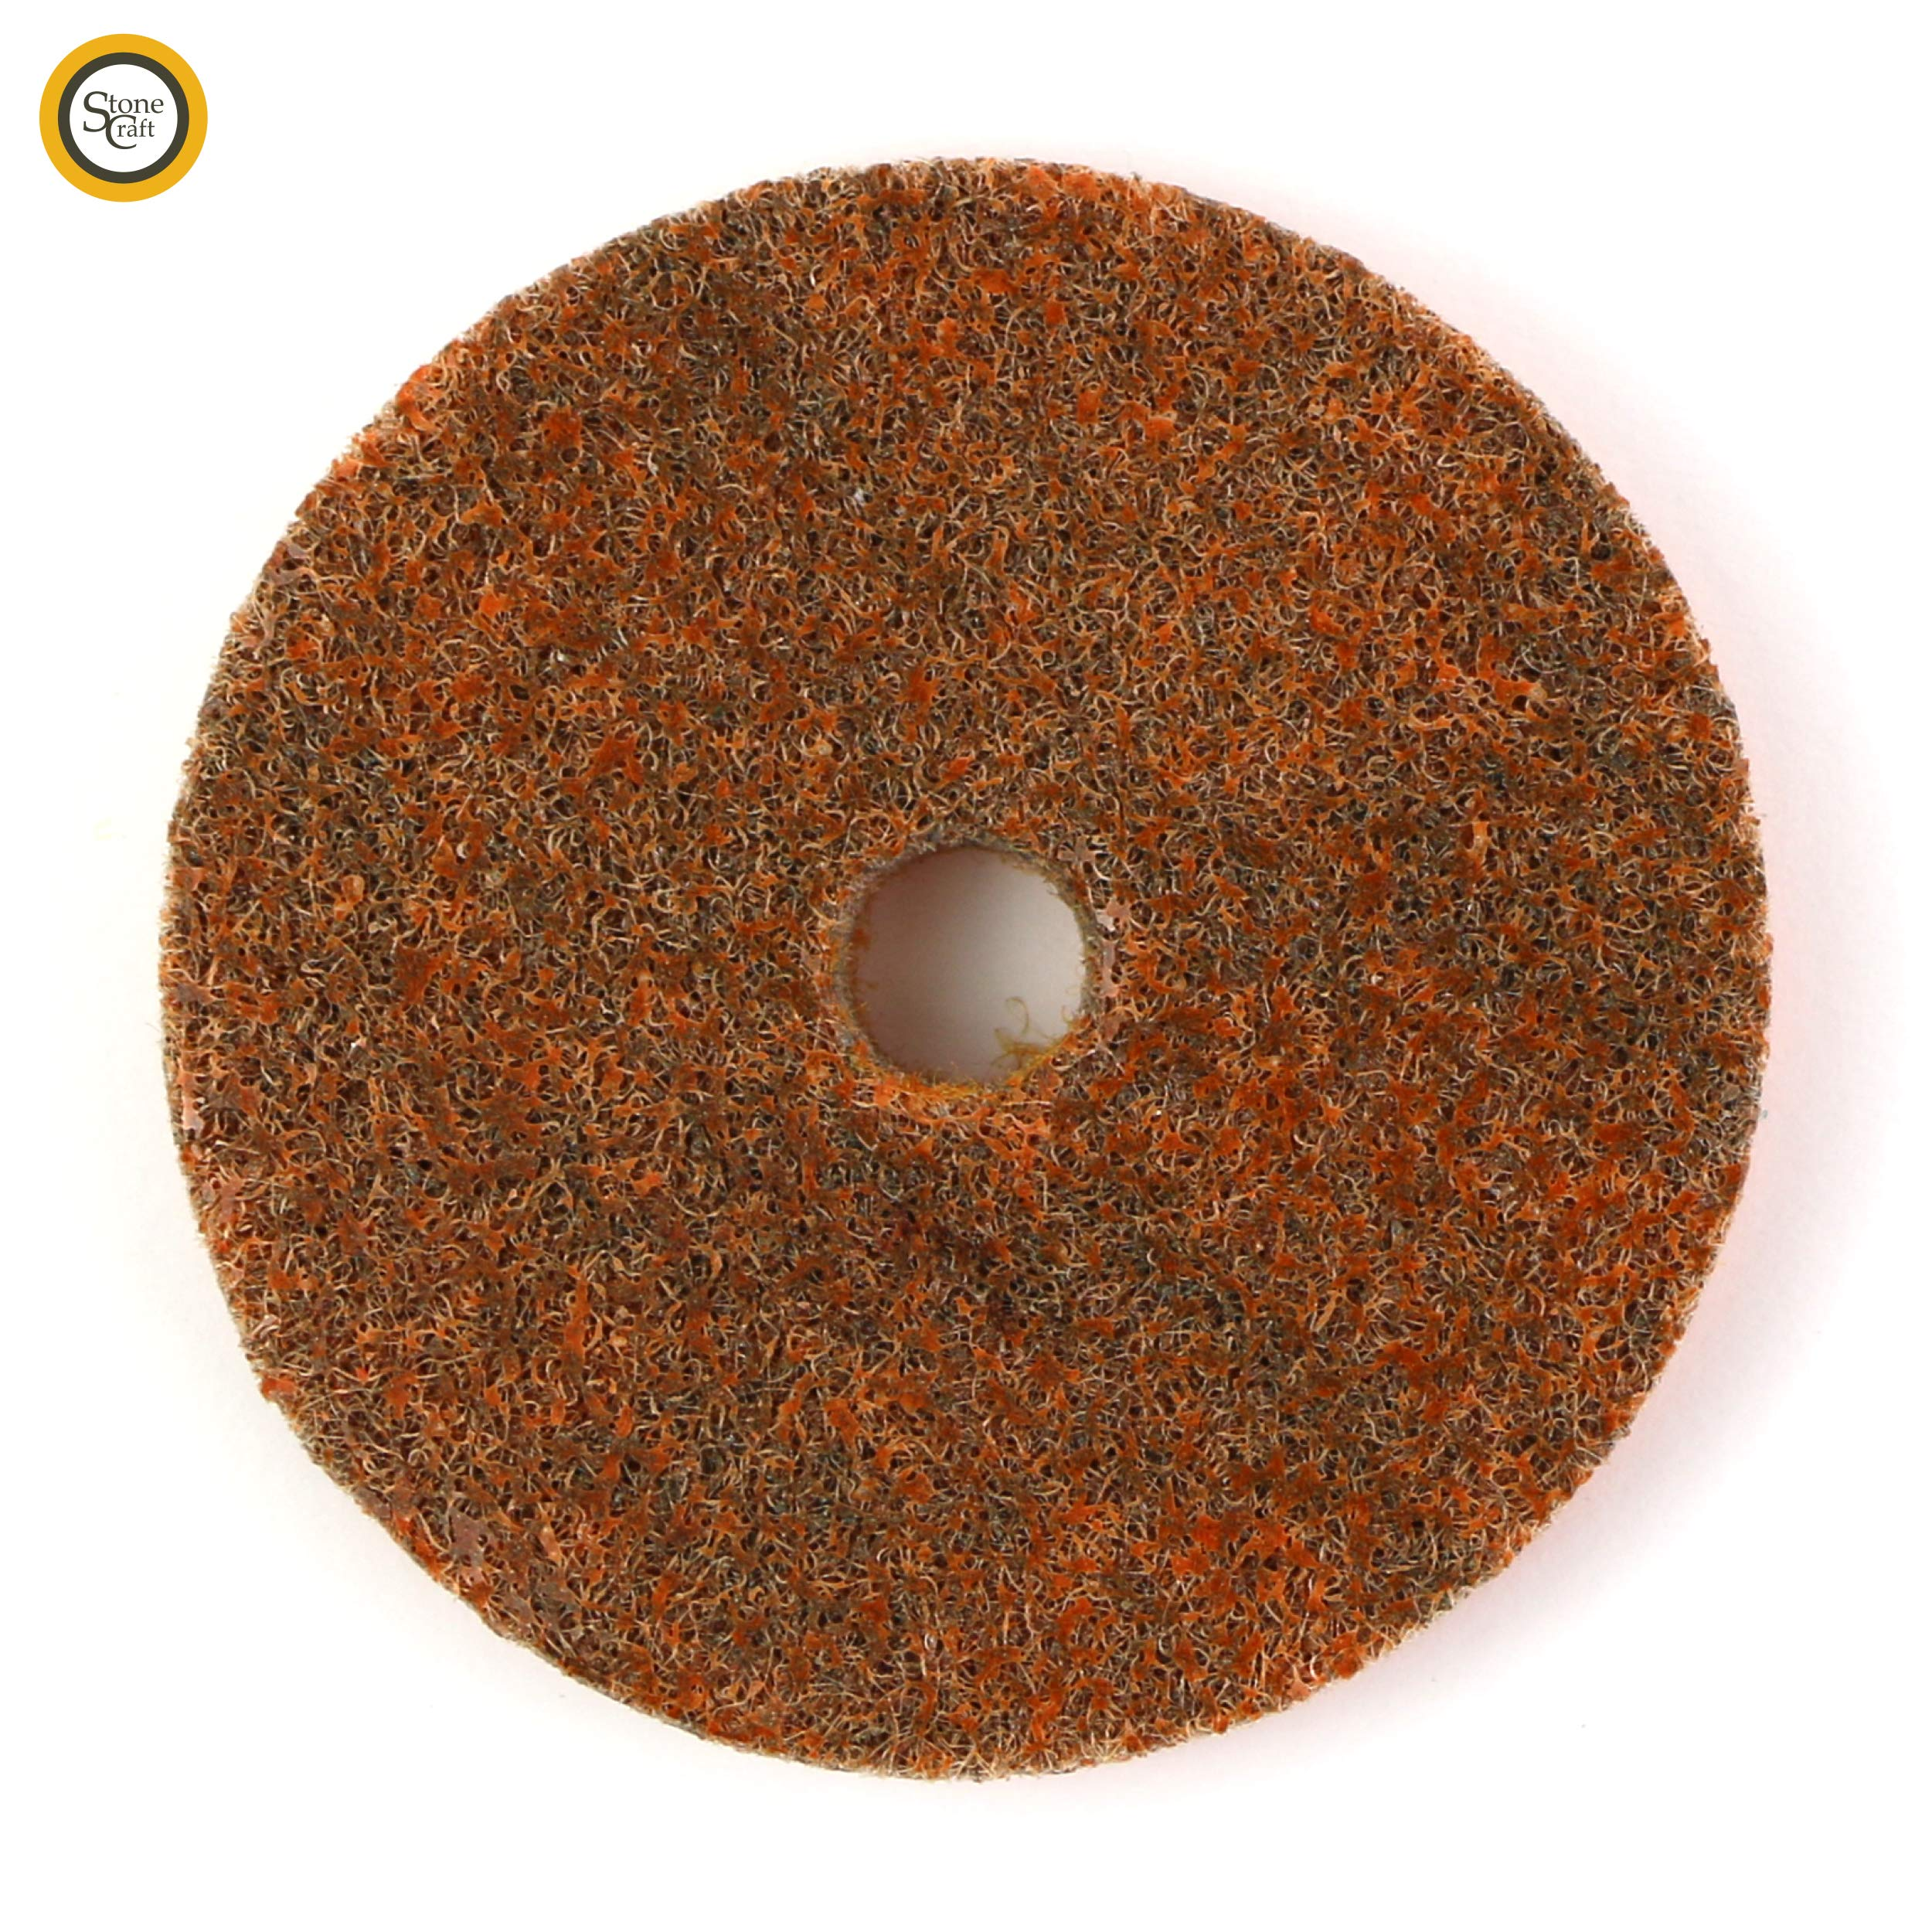 Foam Backing Pad for Granite Marble Concrete StoneCraft Diamond Polishing Pads 4 inch Wet//Dry 11 Piece Set with White Buff